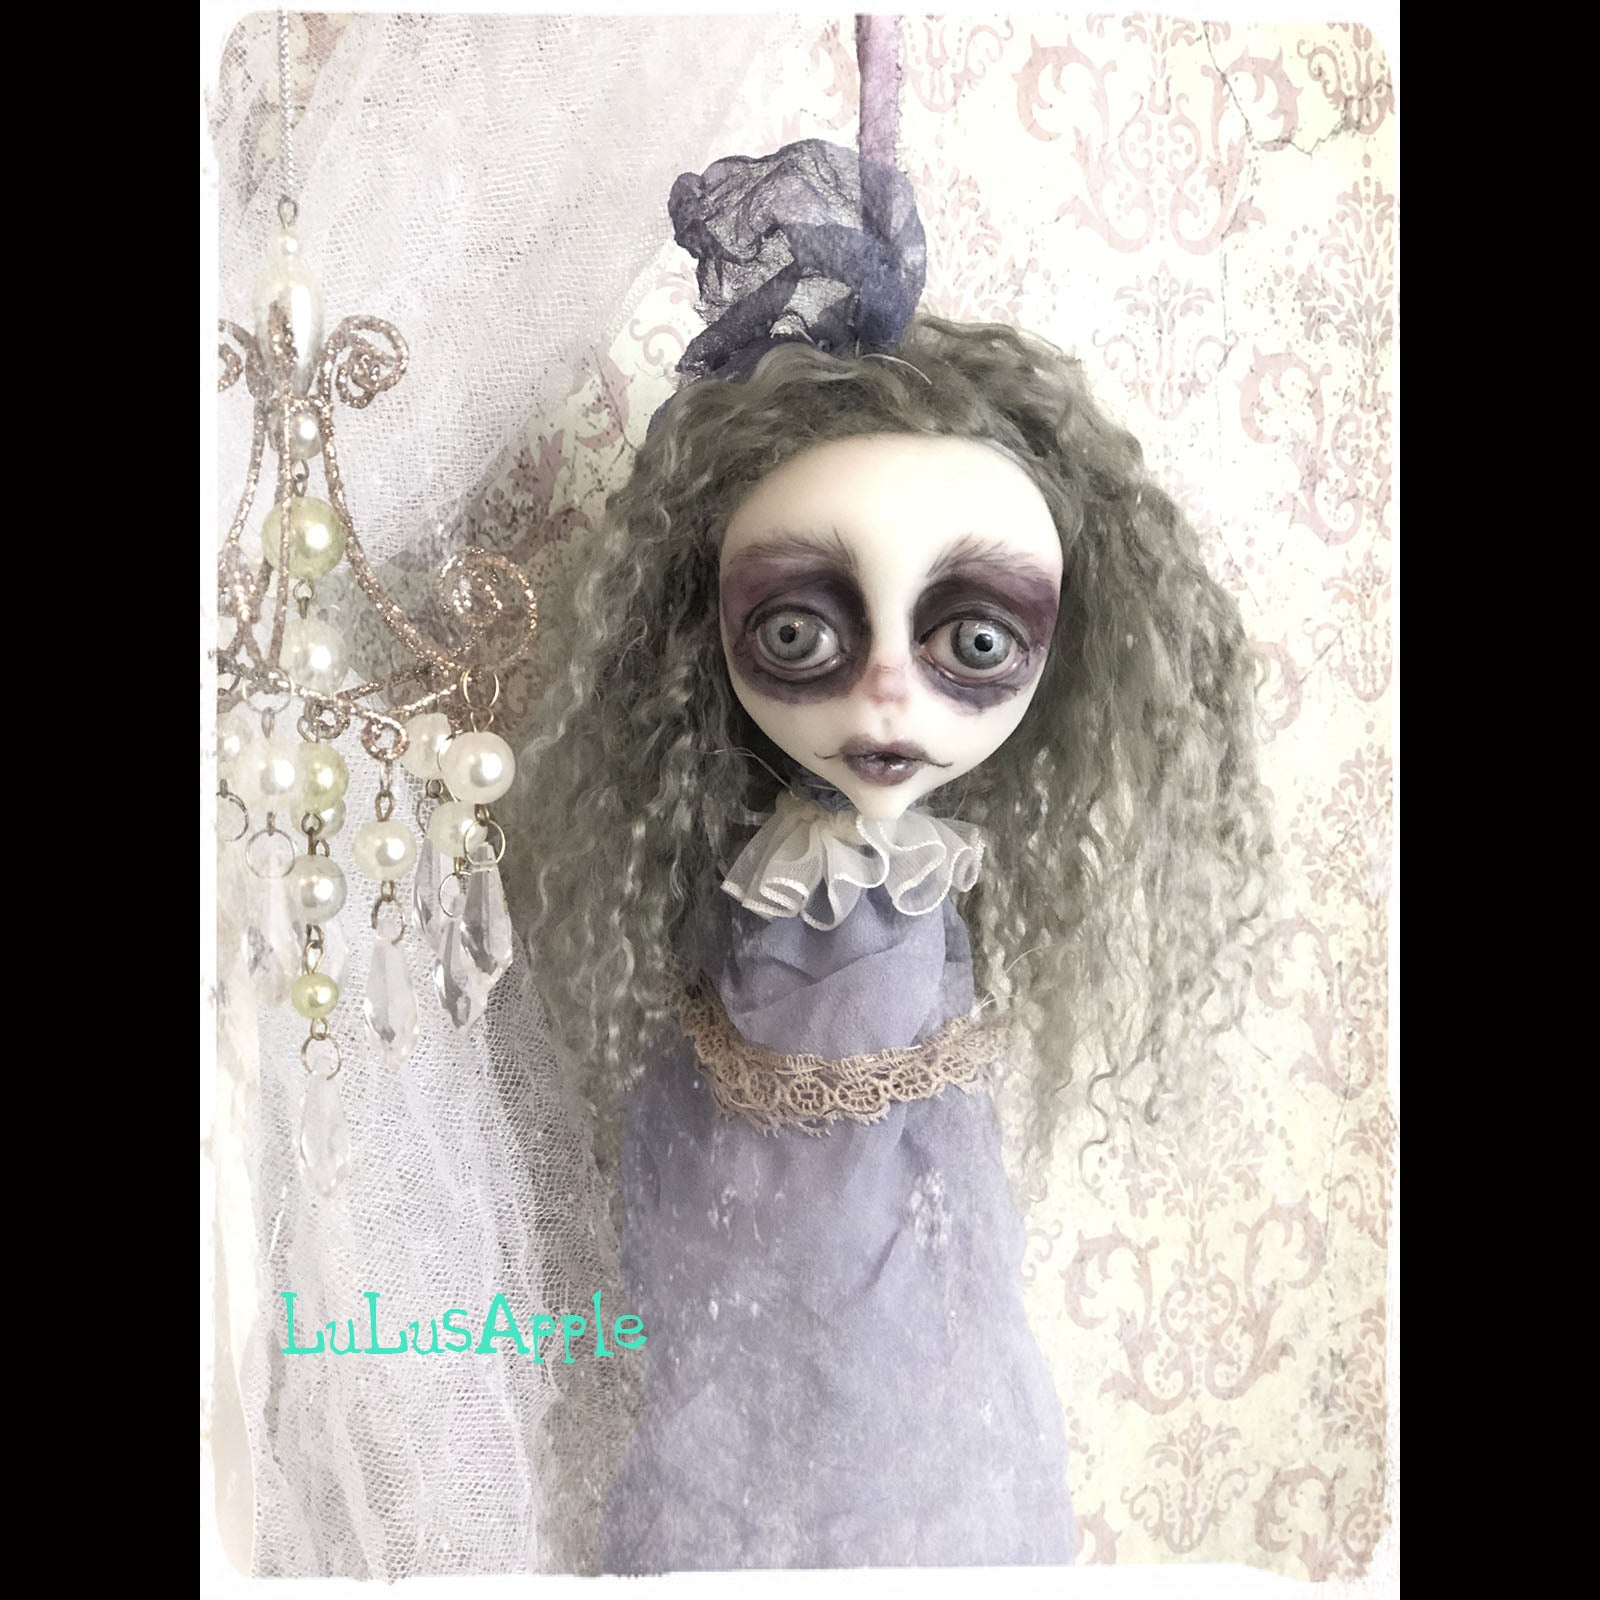 Decapitated Grey Head Ghostly ornament OOAK LuLusApple Art Doll